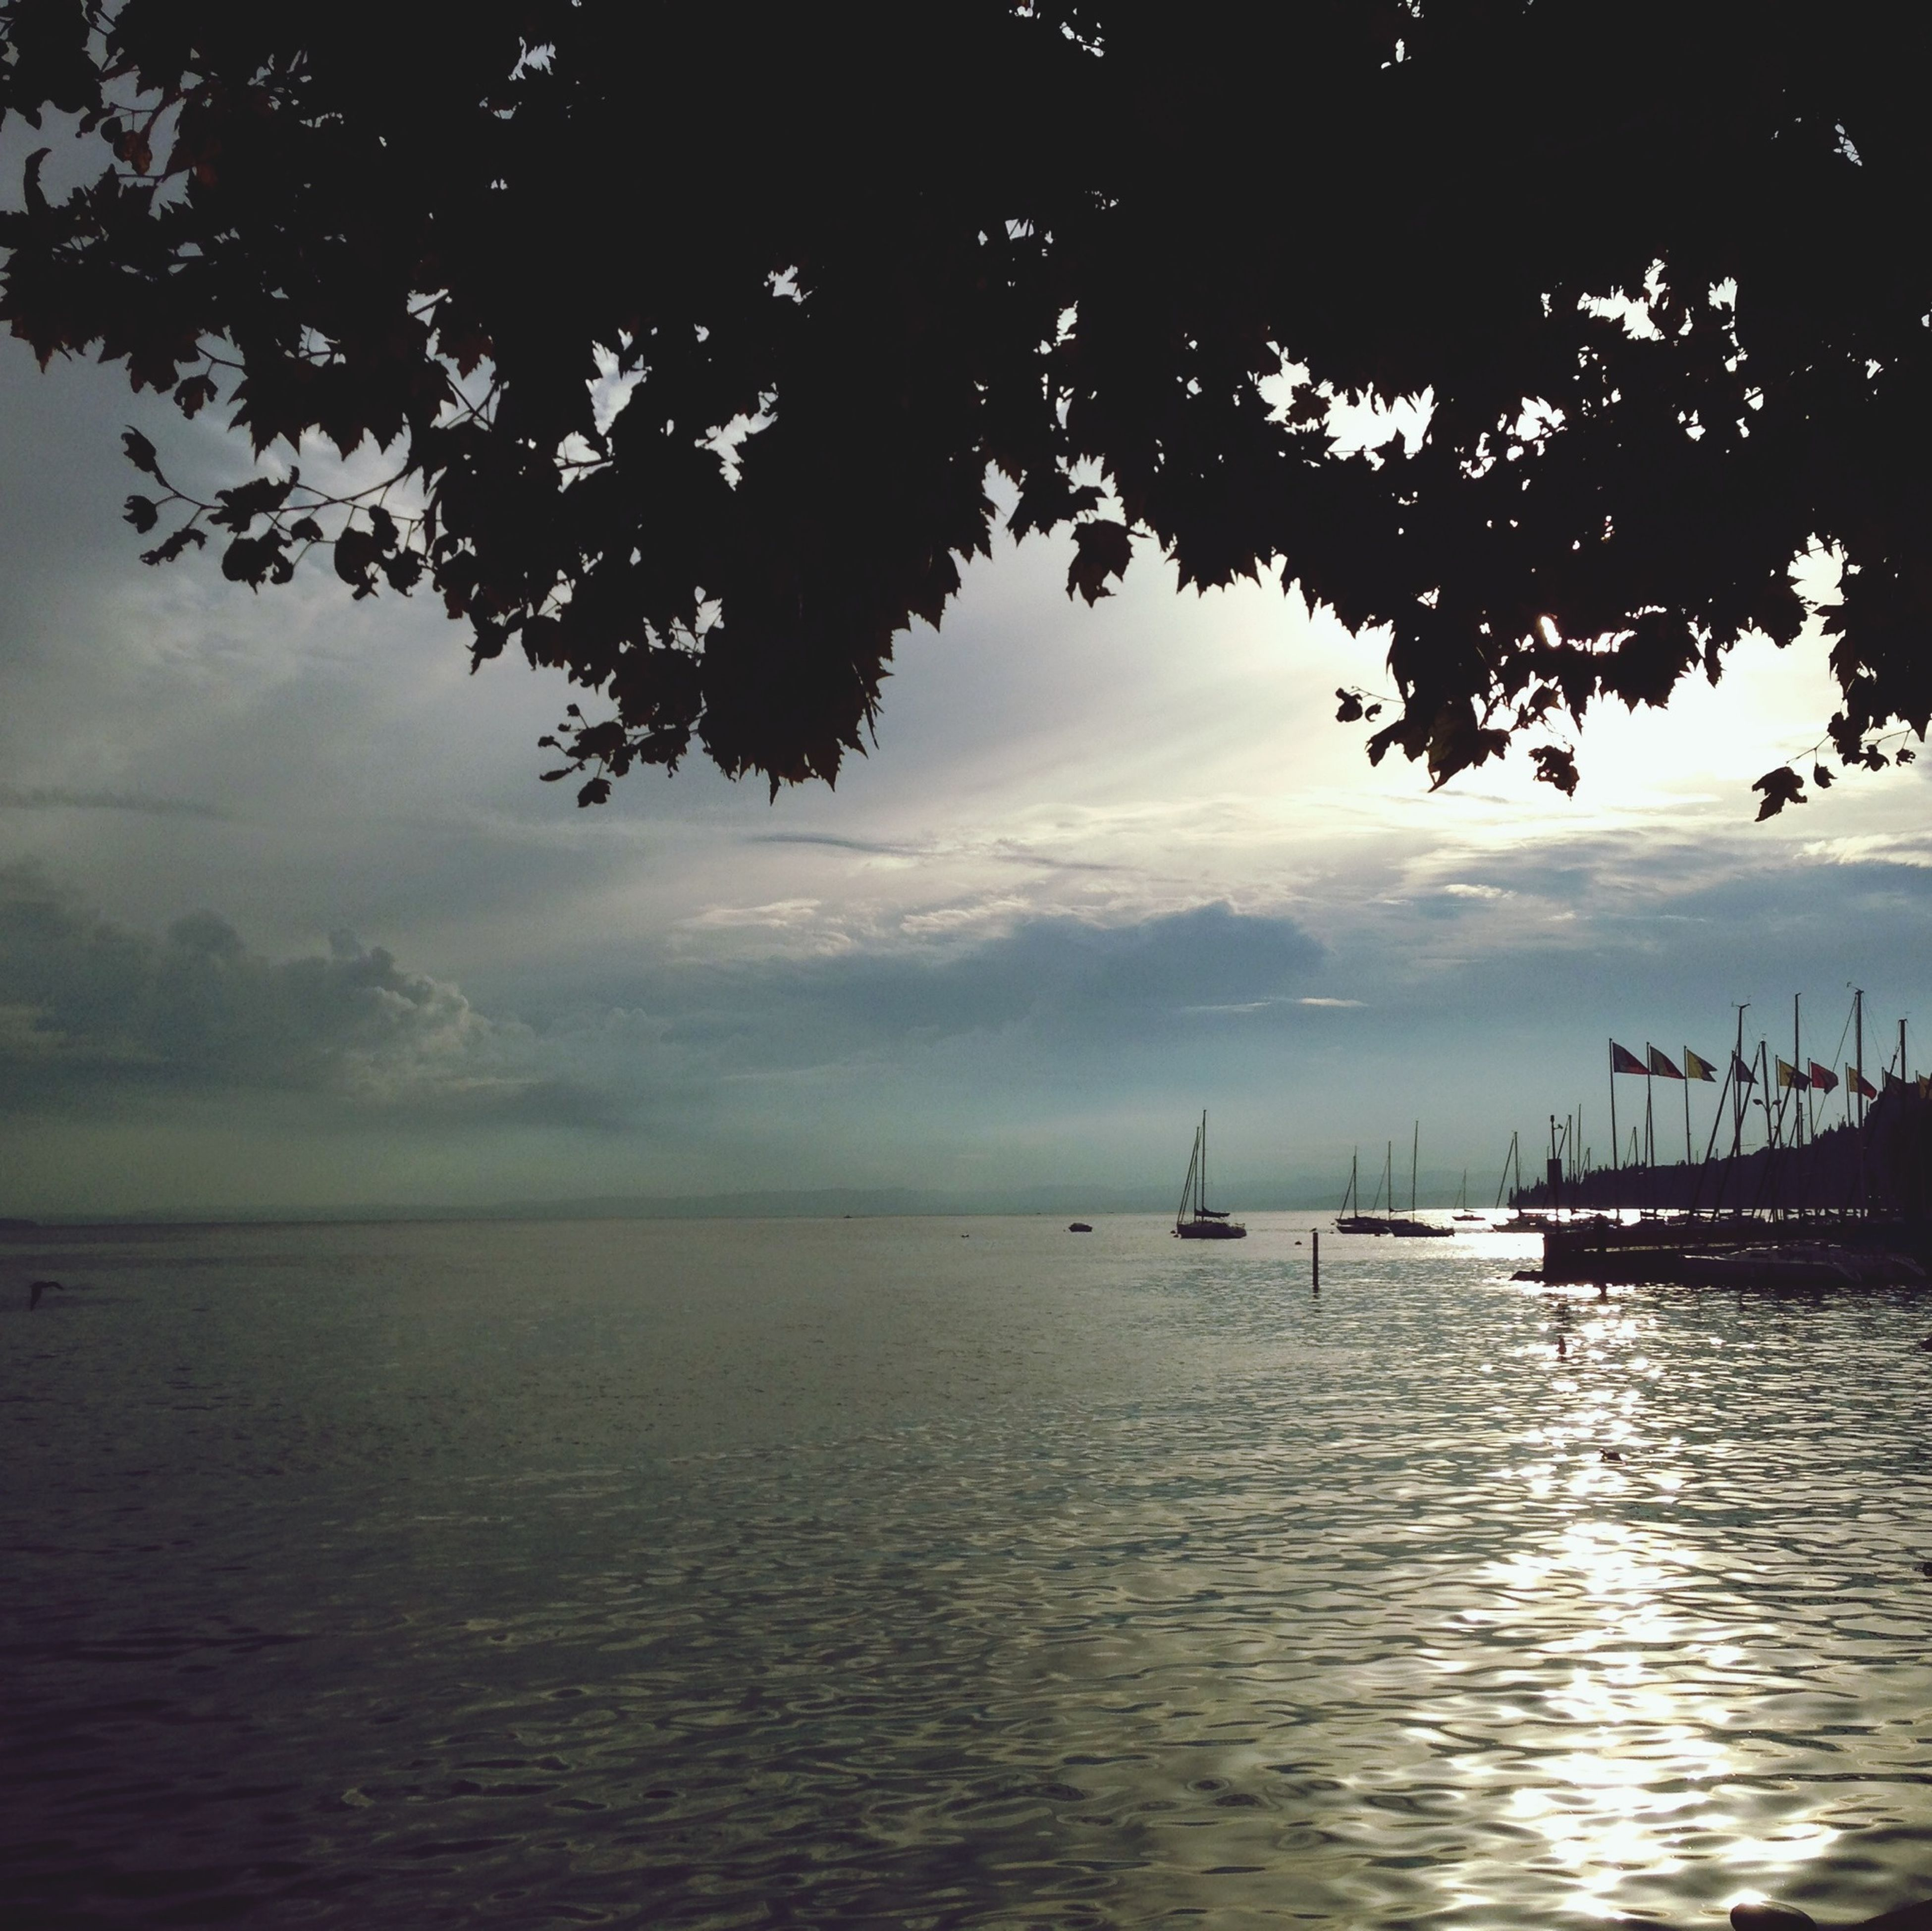 water, sky, sea, tranquility, tranquil scene, silhouette, scenics, waterfront, nautical vessel, beauty in nature, sunset, nature, transportation, boat, cloud - sky, mode of transport, tree, dusk, horizon over water, idyllic